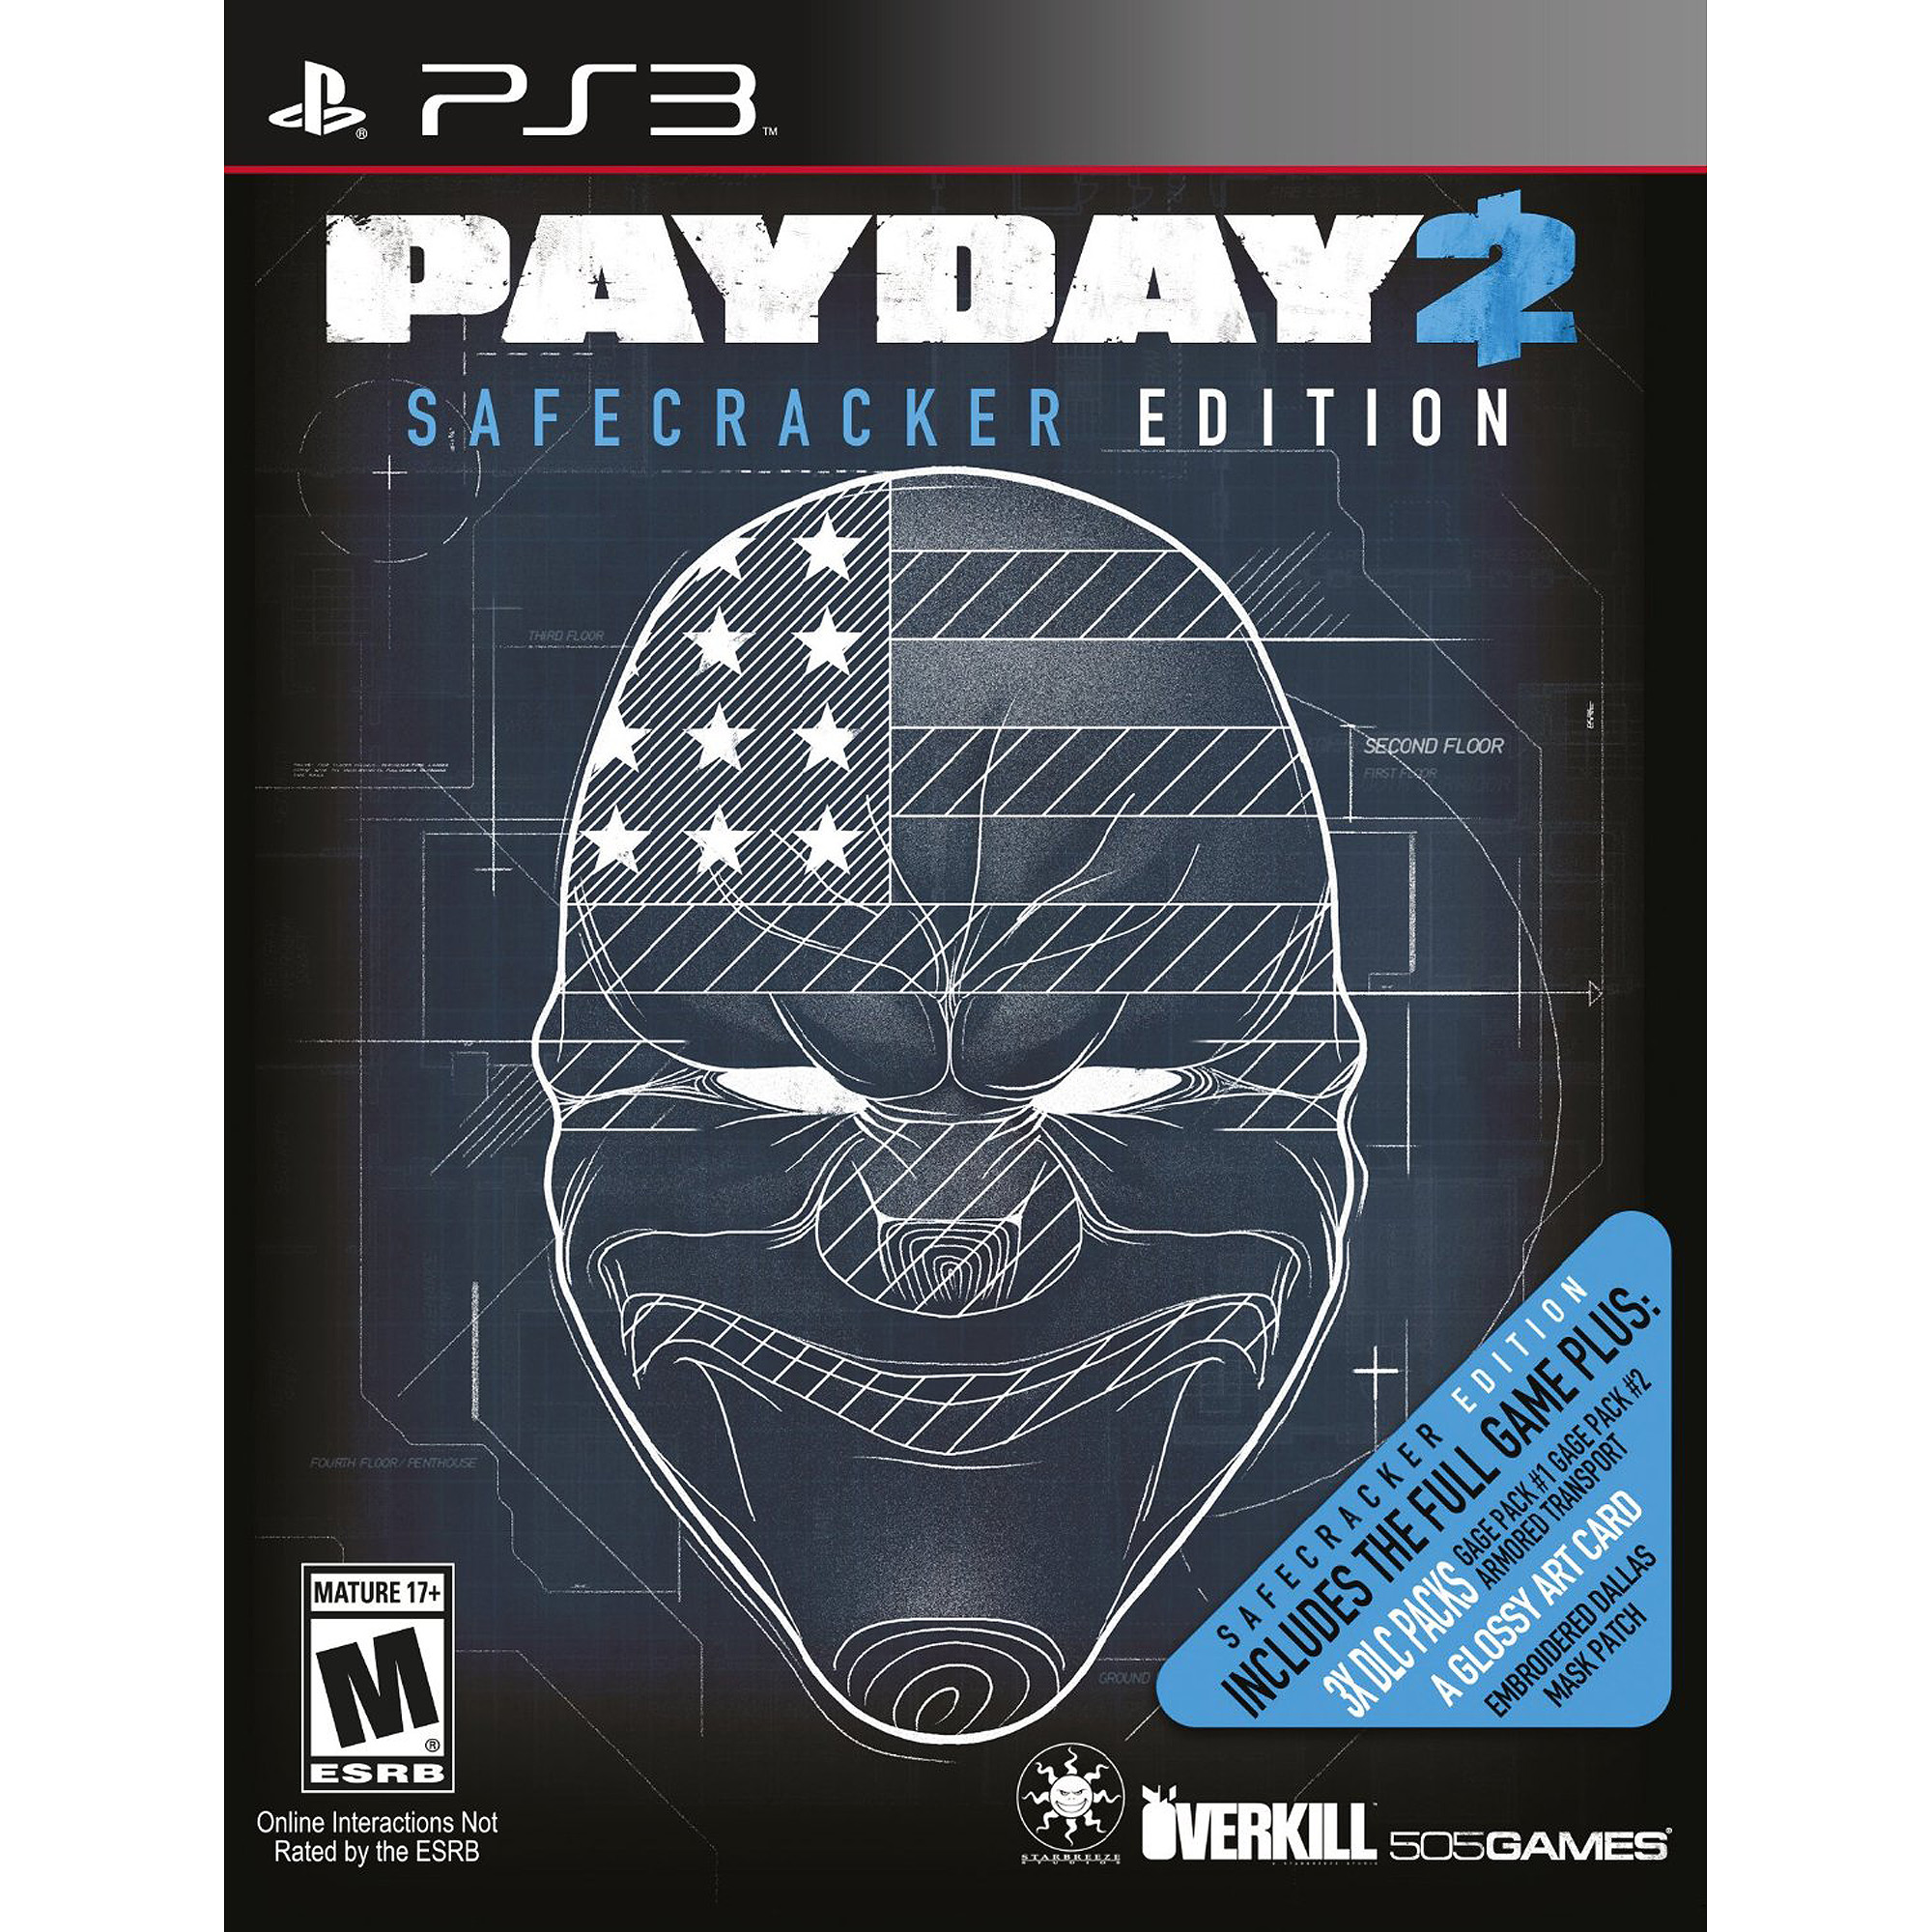 Payday 2 Safecracker (PS3)